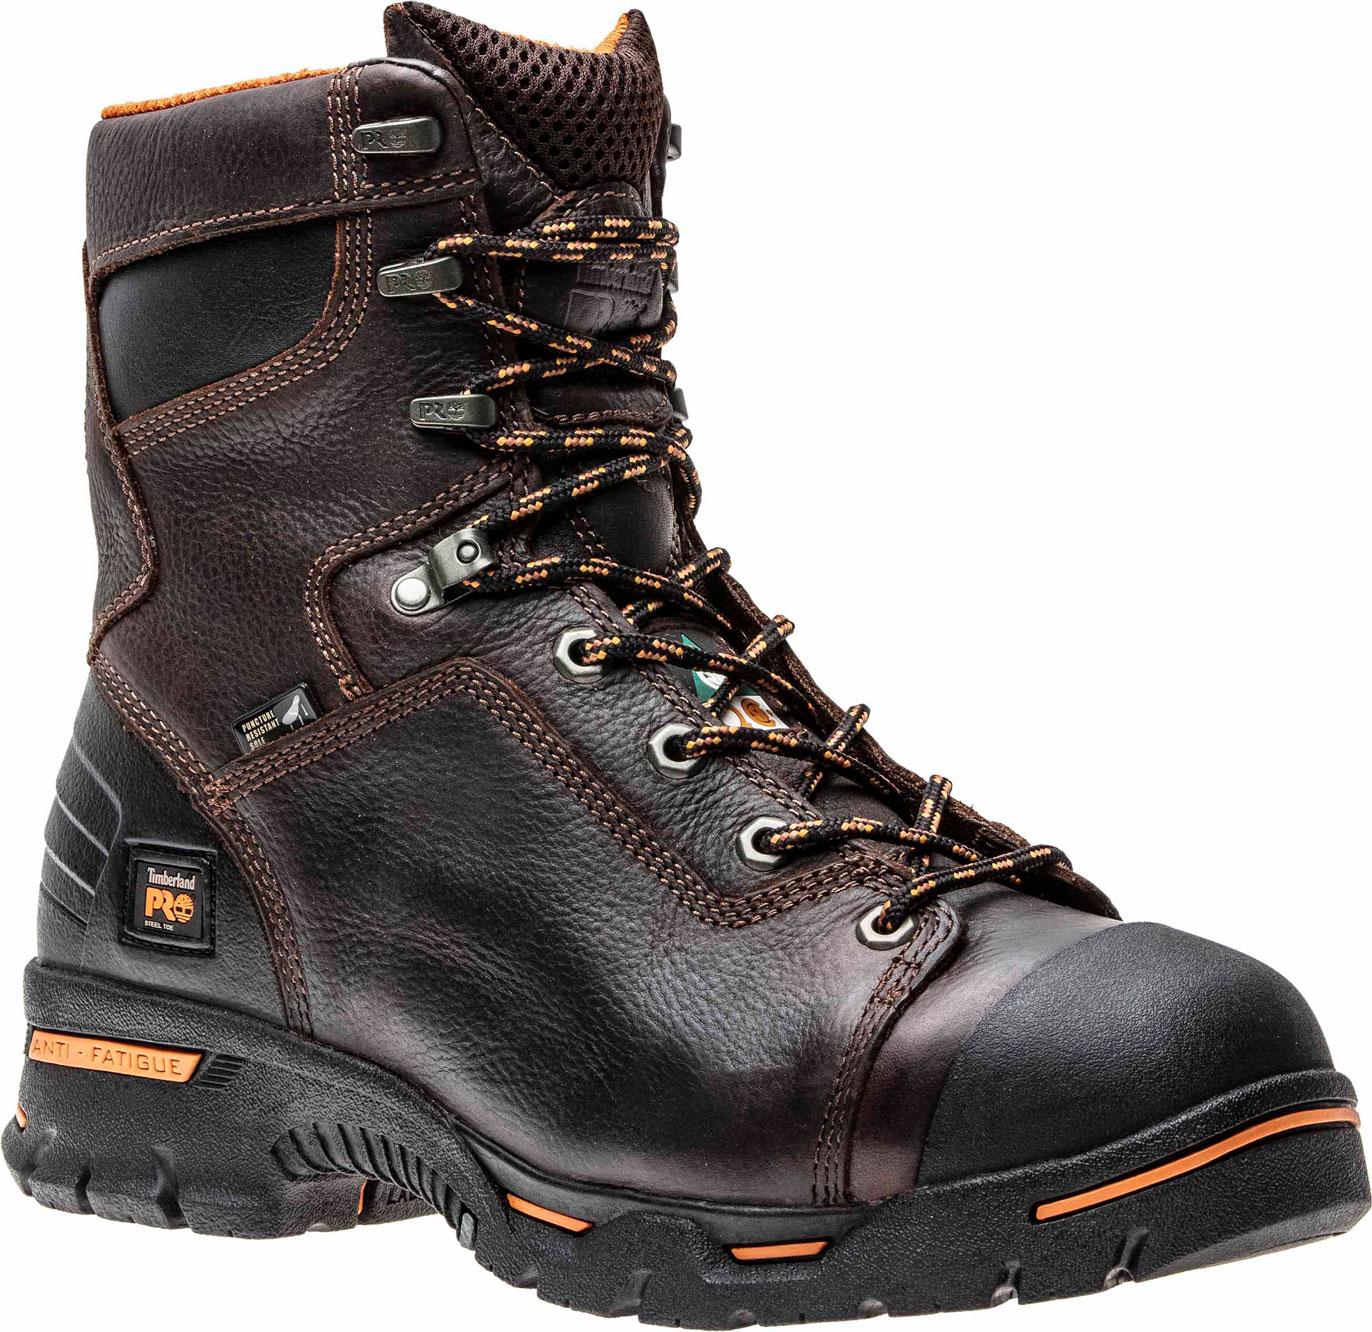 Safgard :: Work Boots, Safety Shoes, Steel Toe, Waterproof, Safety Footwear,  Bates, Boots, ANSI & ASTM